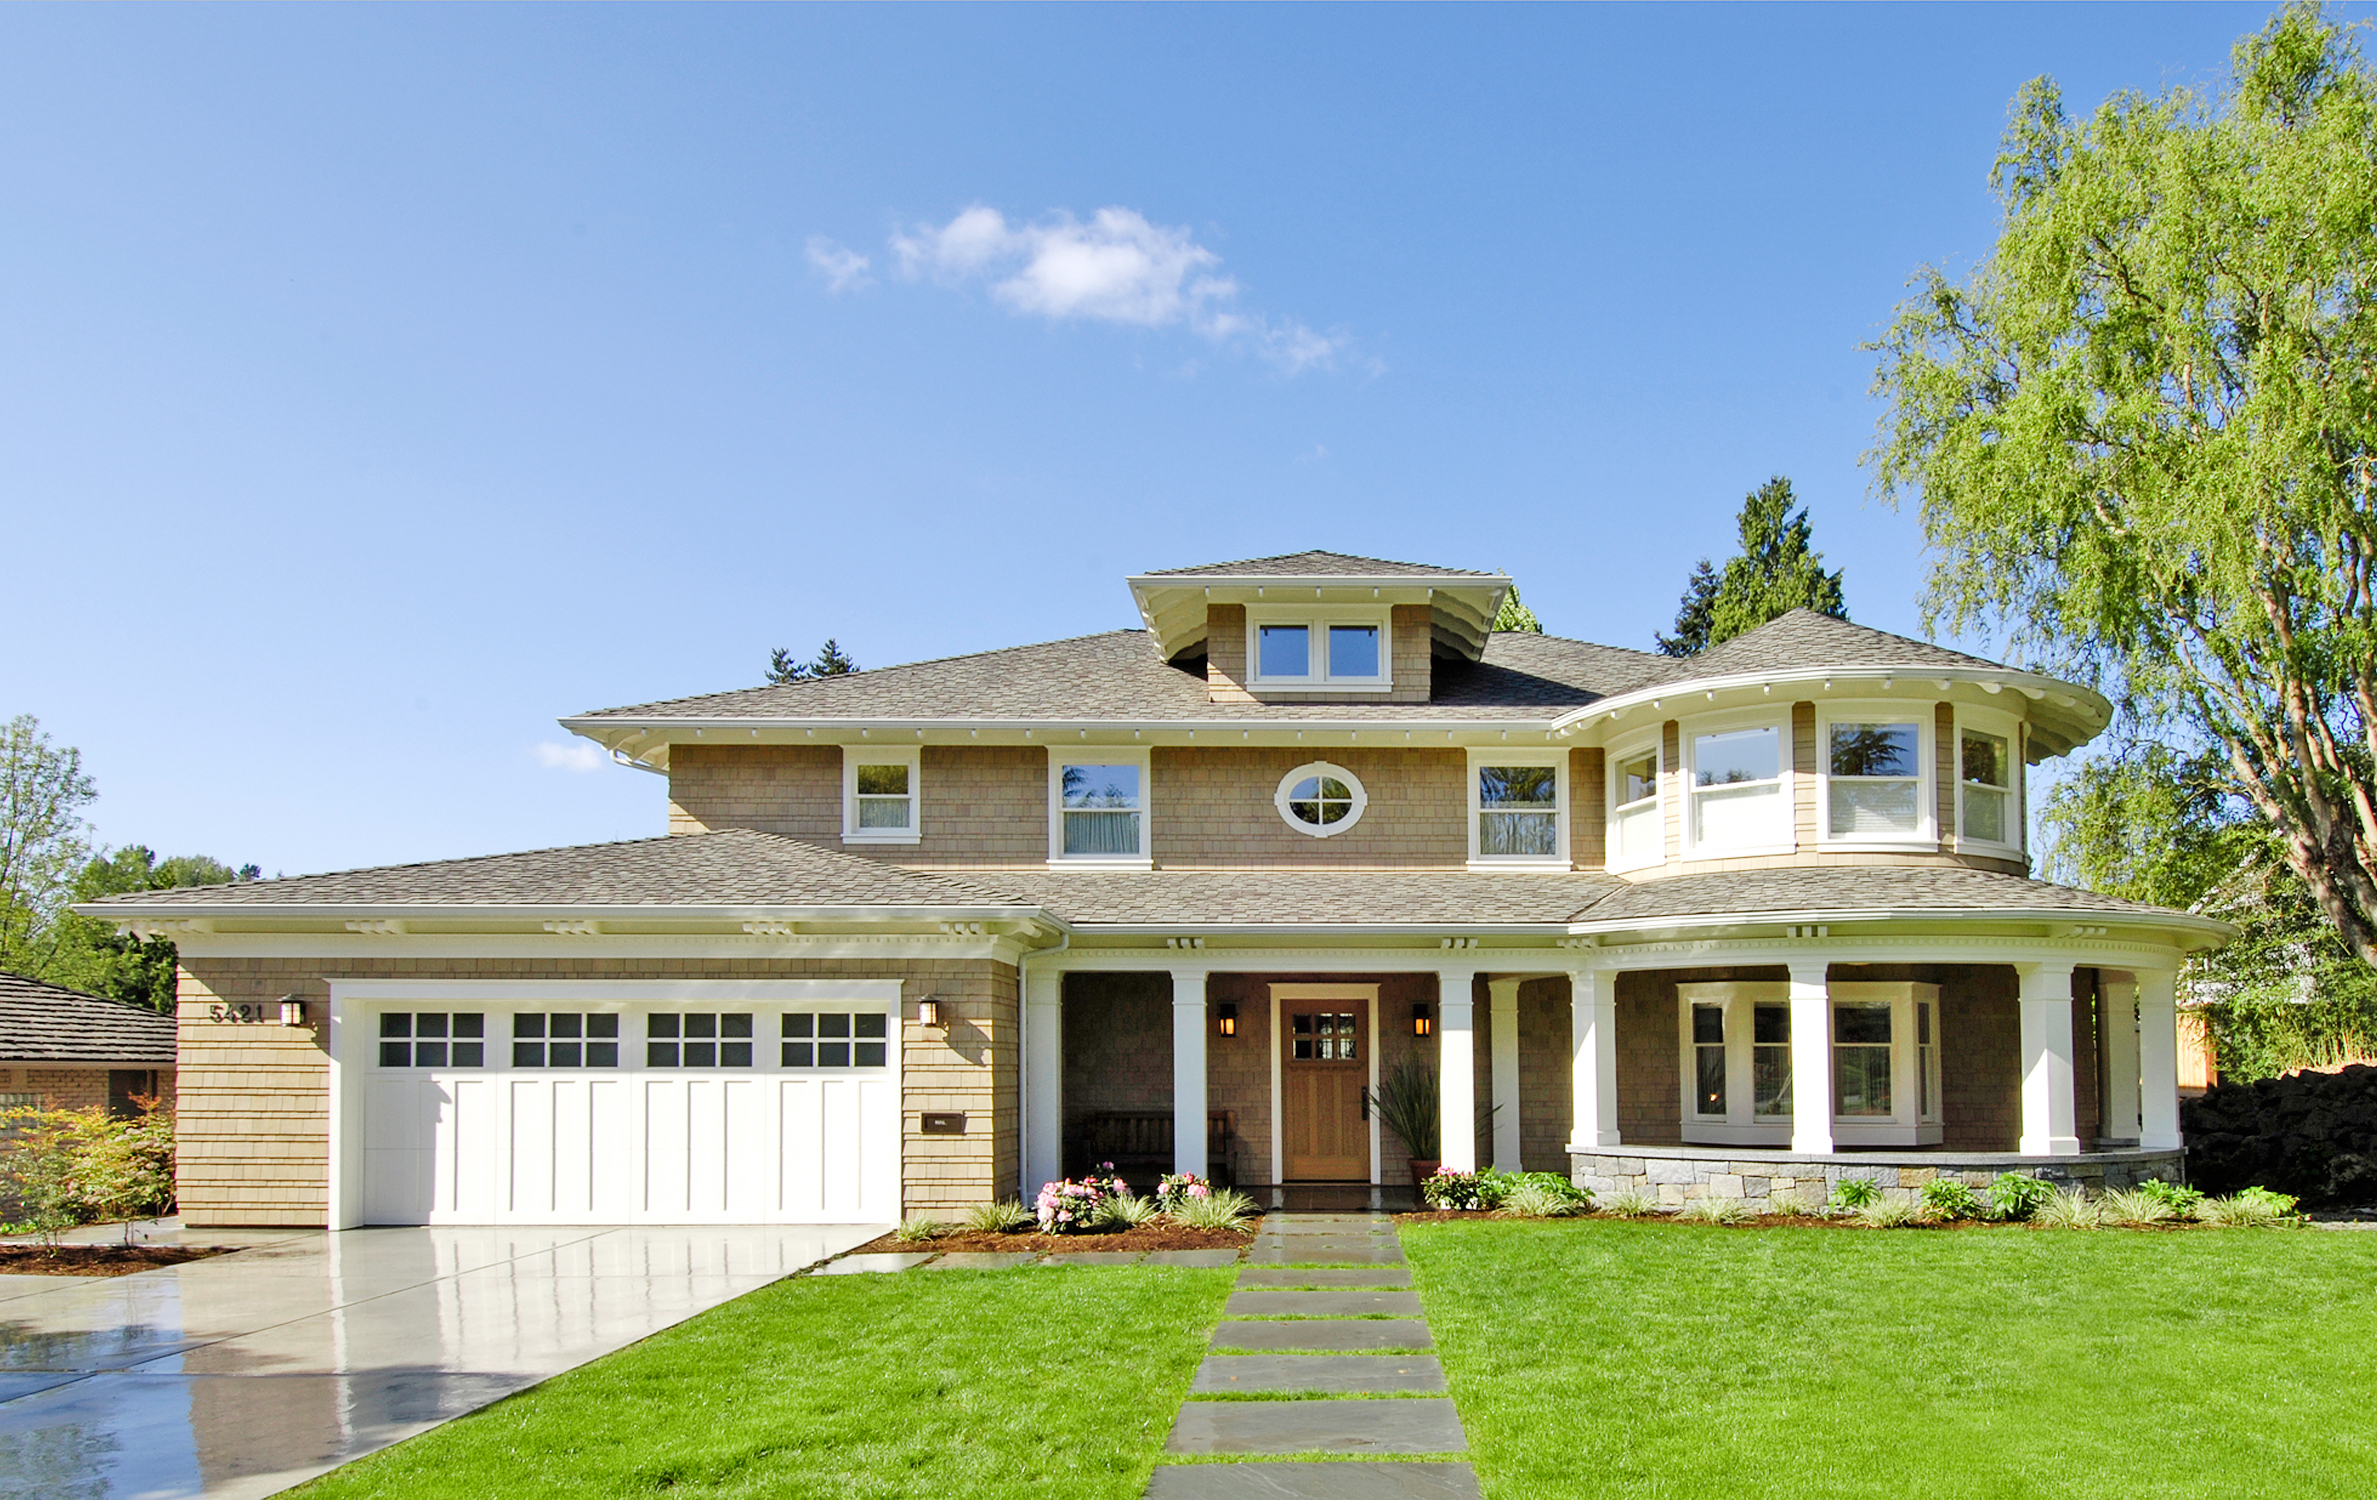 Seattle Residential Architect TCA Architecture designed this beautiful high end Windermere Residence